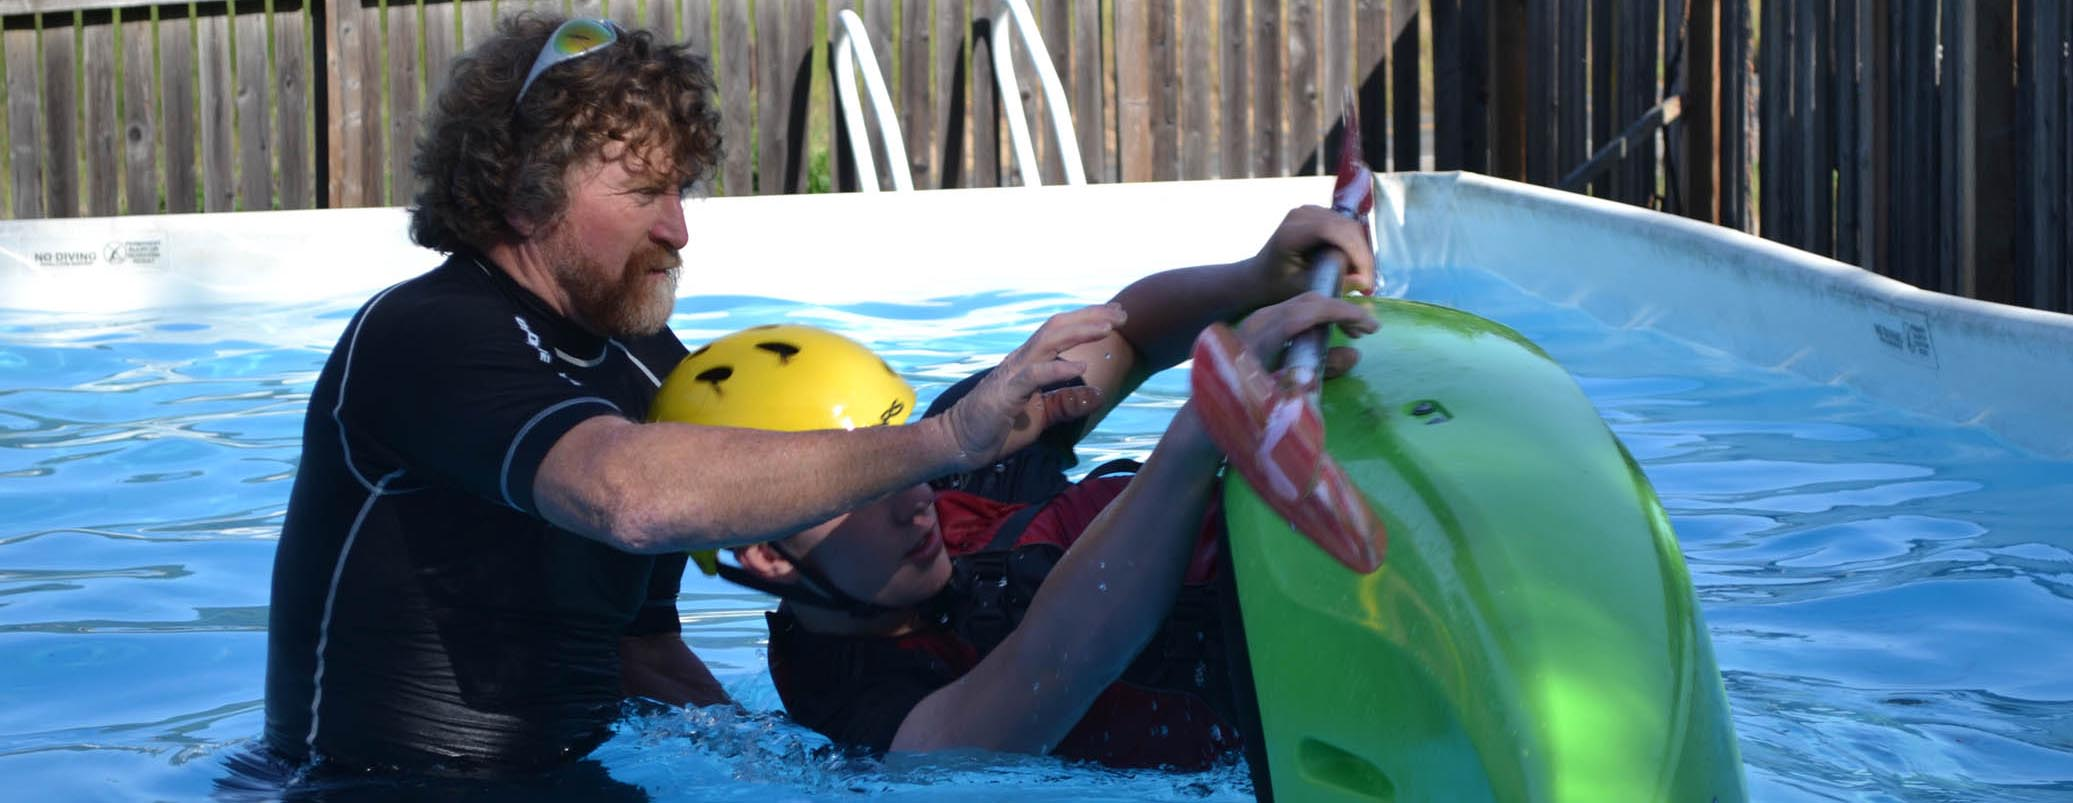 Kayak Roll Lessons with Dan Crandall